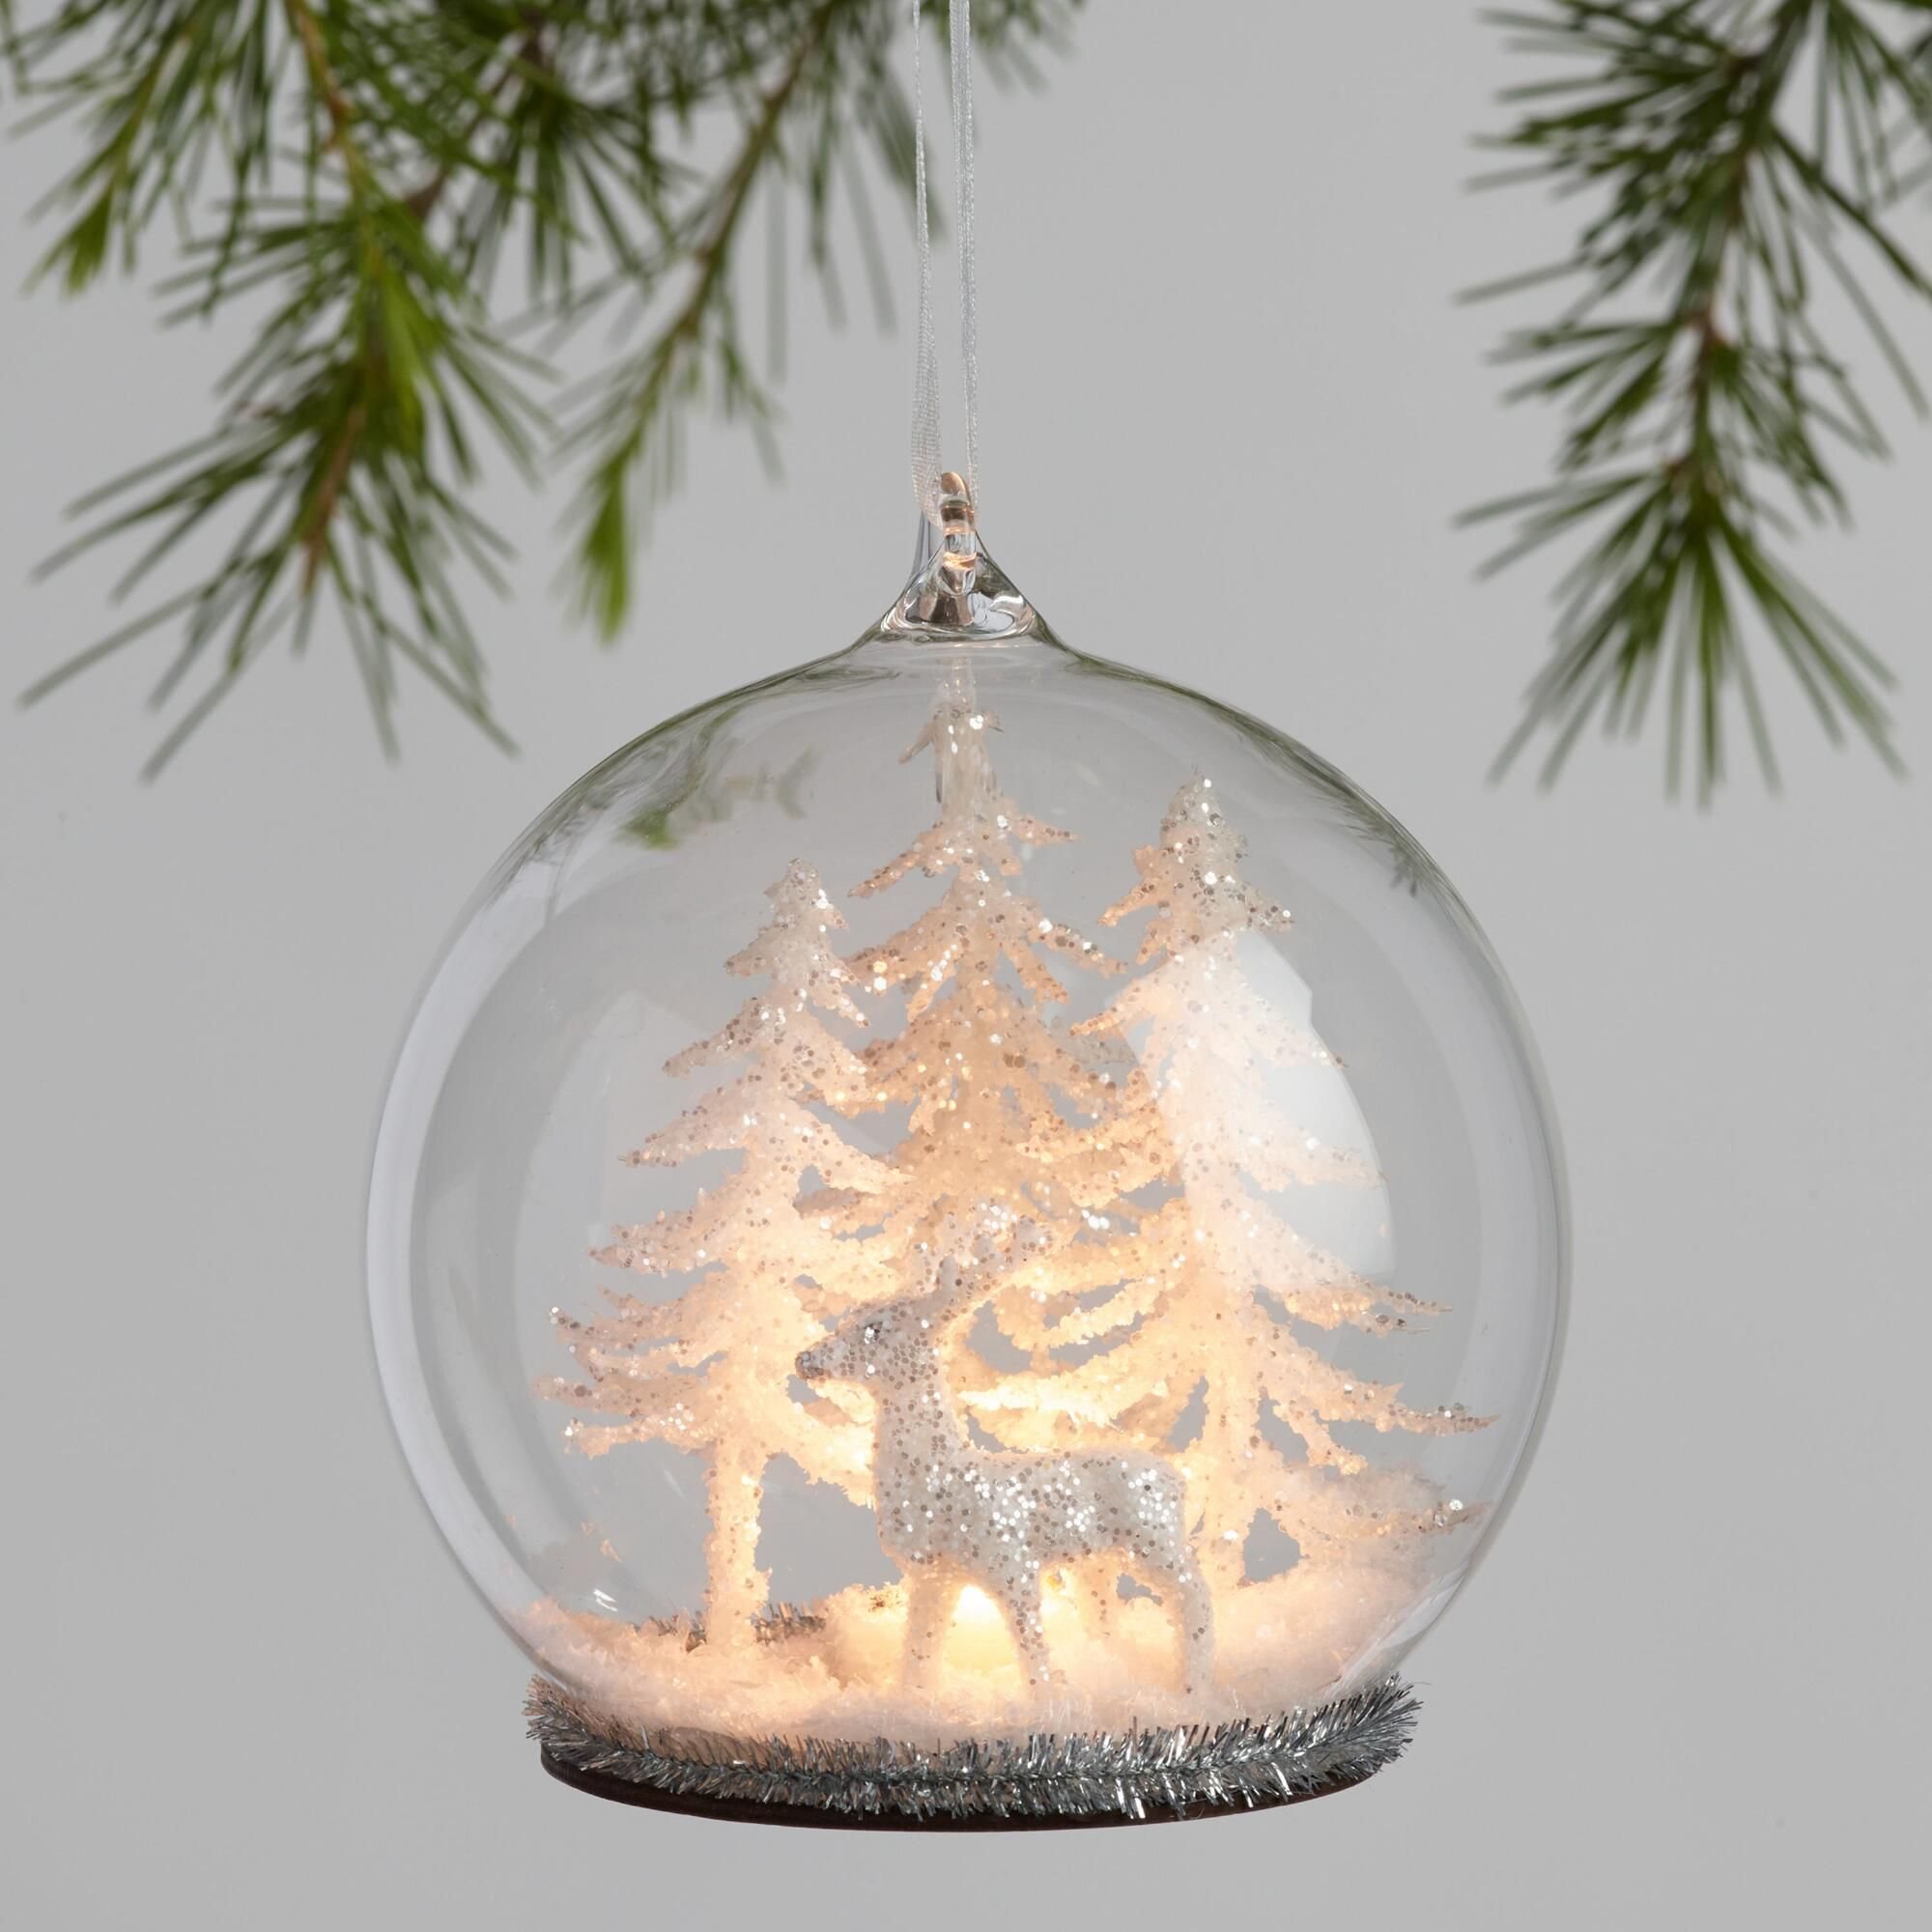 Gl Cloche Winter Scene Led Light Up Ornaments Set Of 2 By